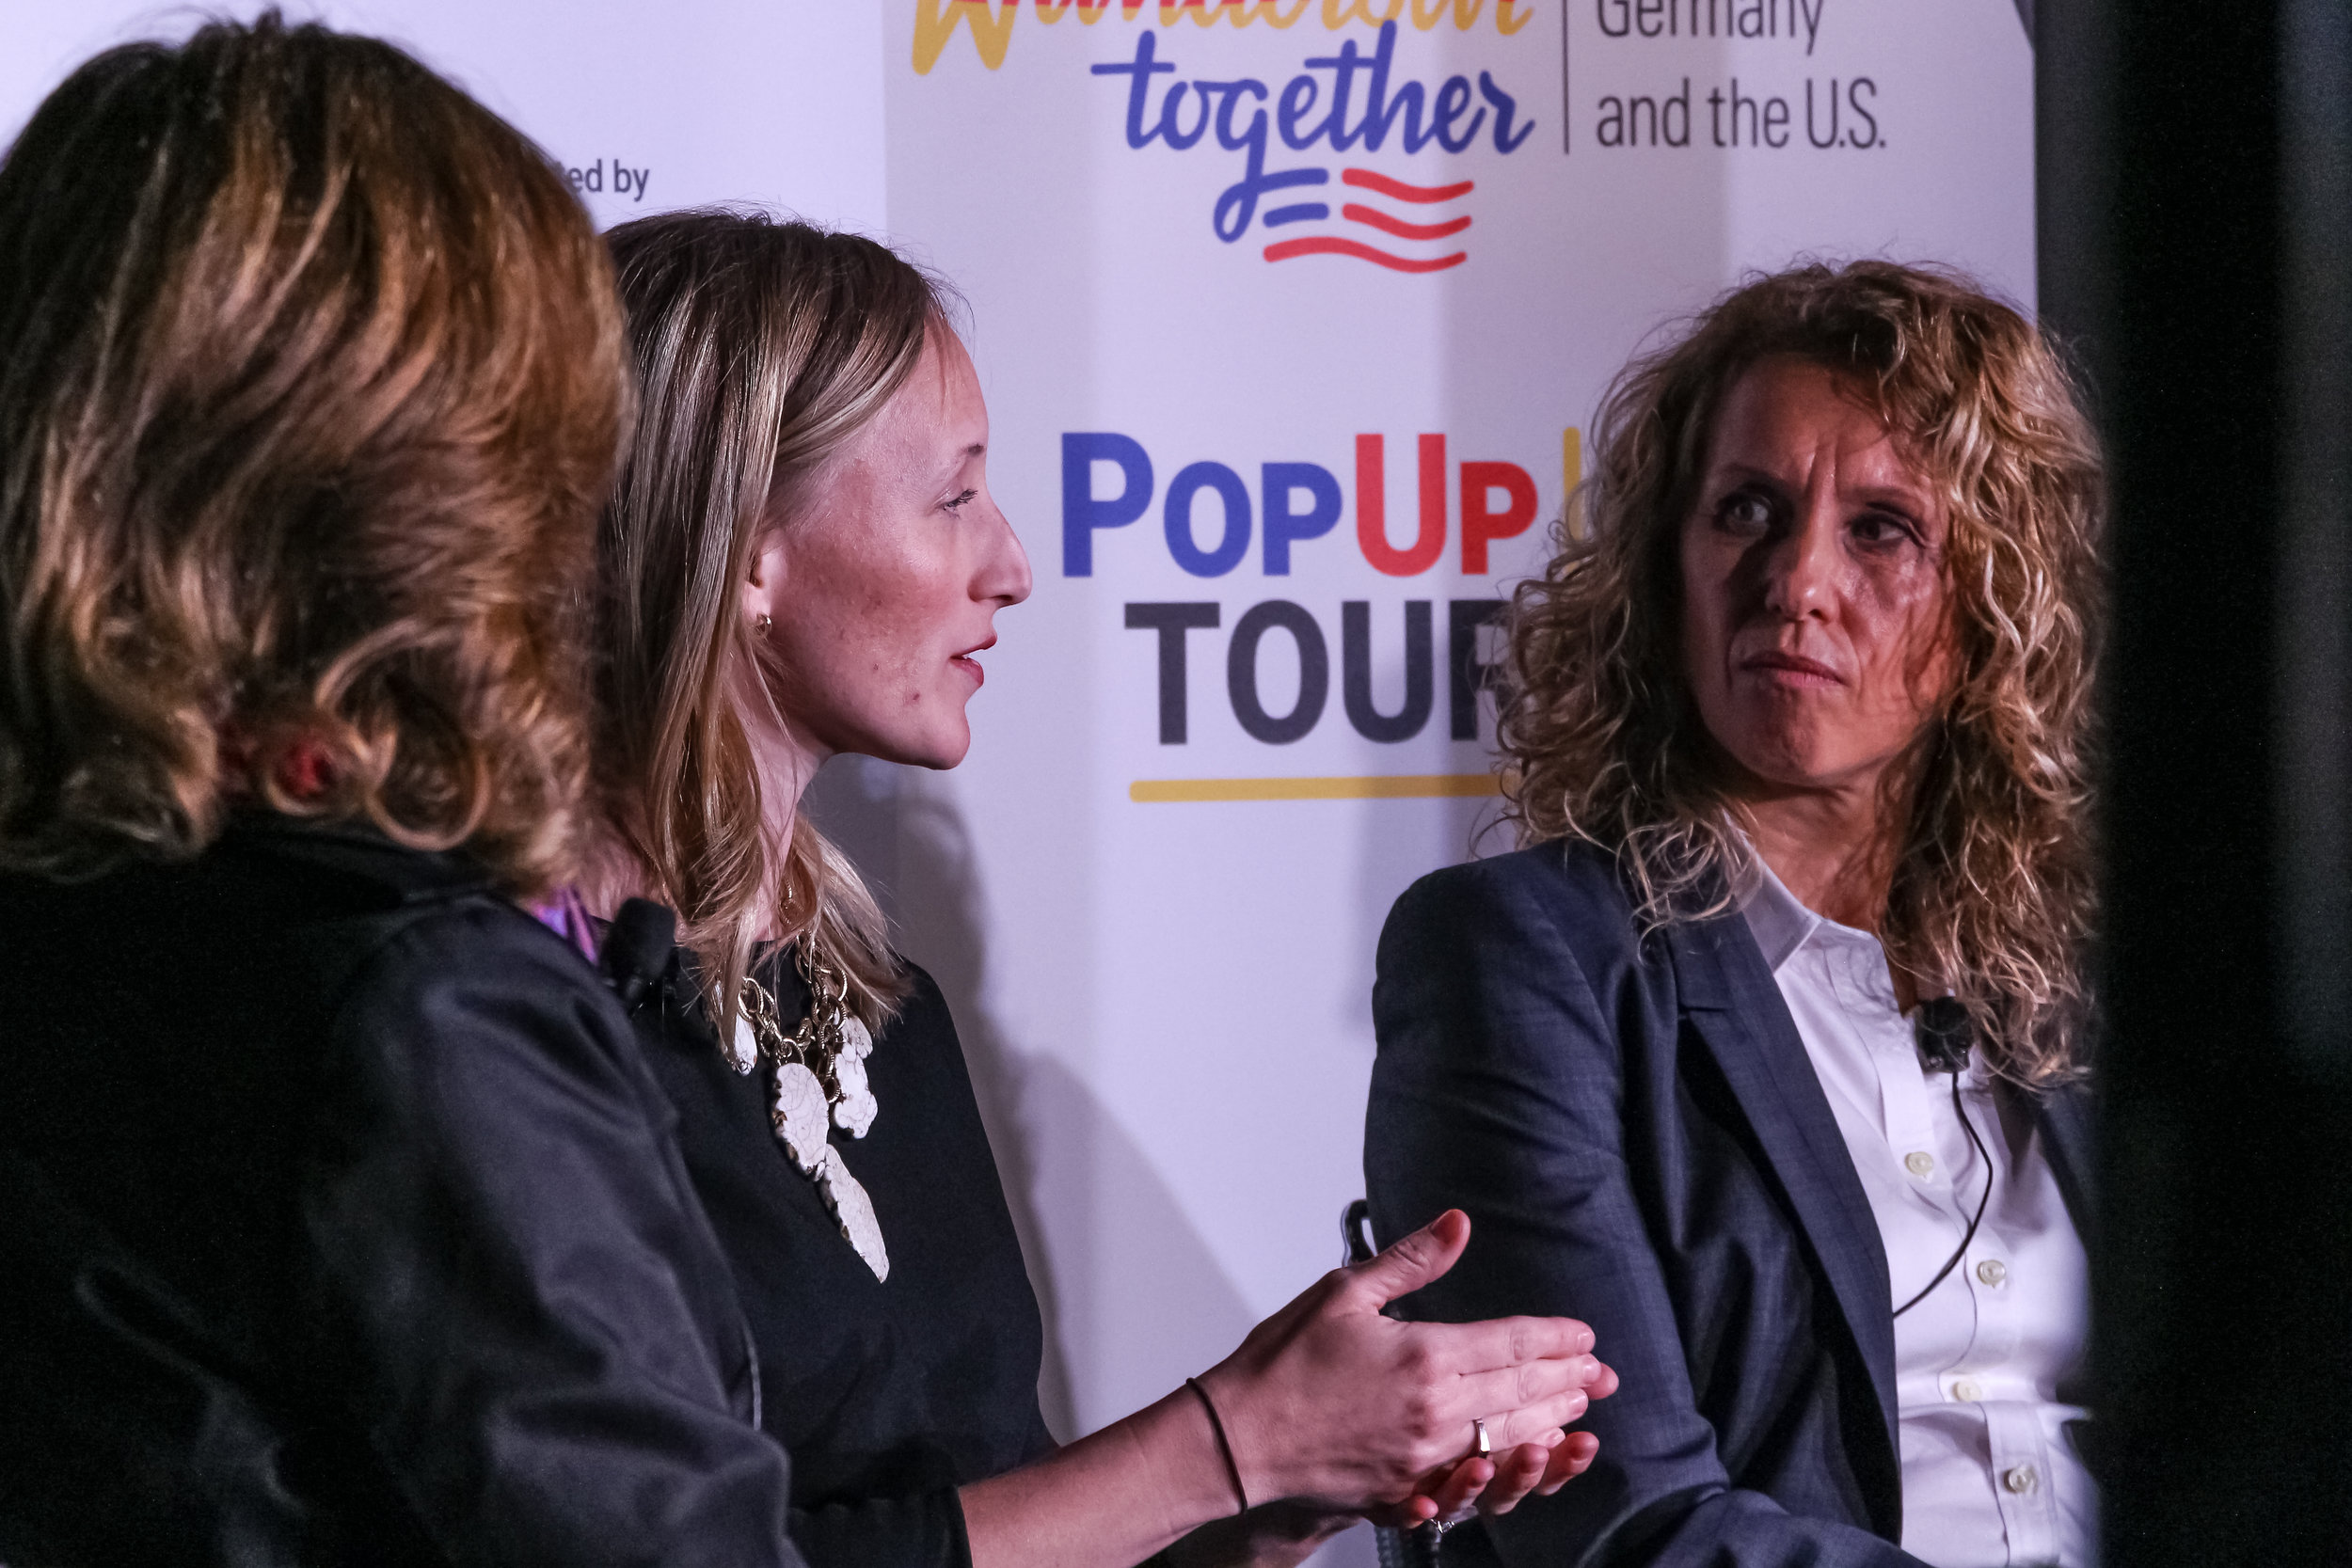 Lizabeth Stuck, Head of Workforce Development at MxD, and Susanne Lemaine, Ph.D., President Vetter Development Services USA, Inc. at Germany Week. Daley Plaza, Chicago, 2019.